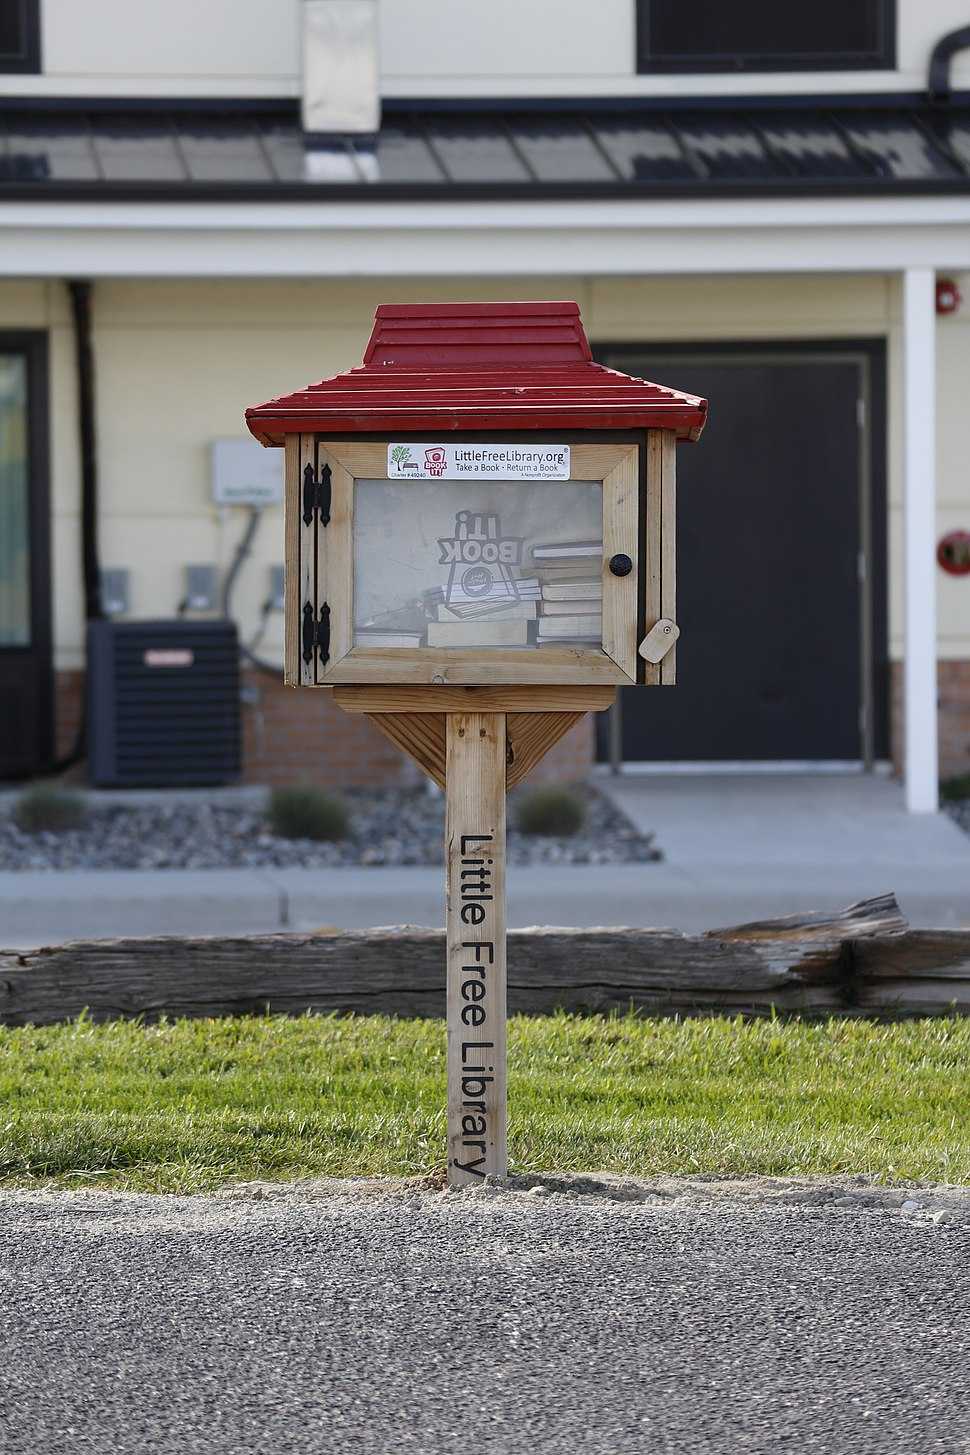 Pizza Hut themed Little Free Library in Gillette, Wyoming